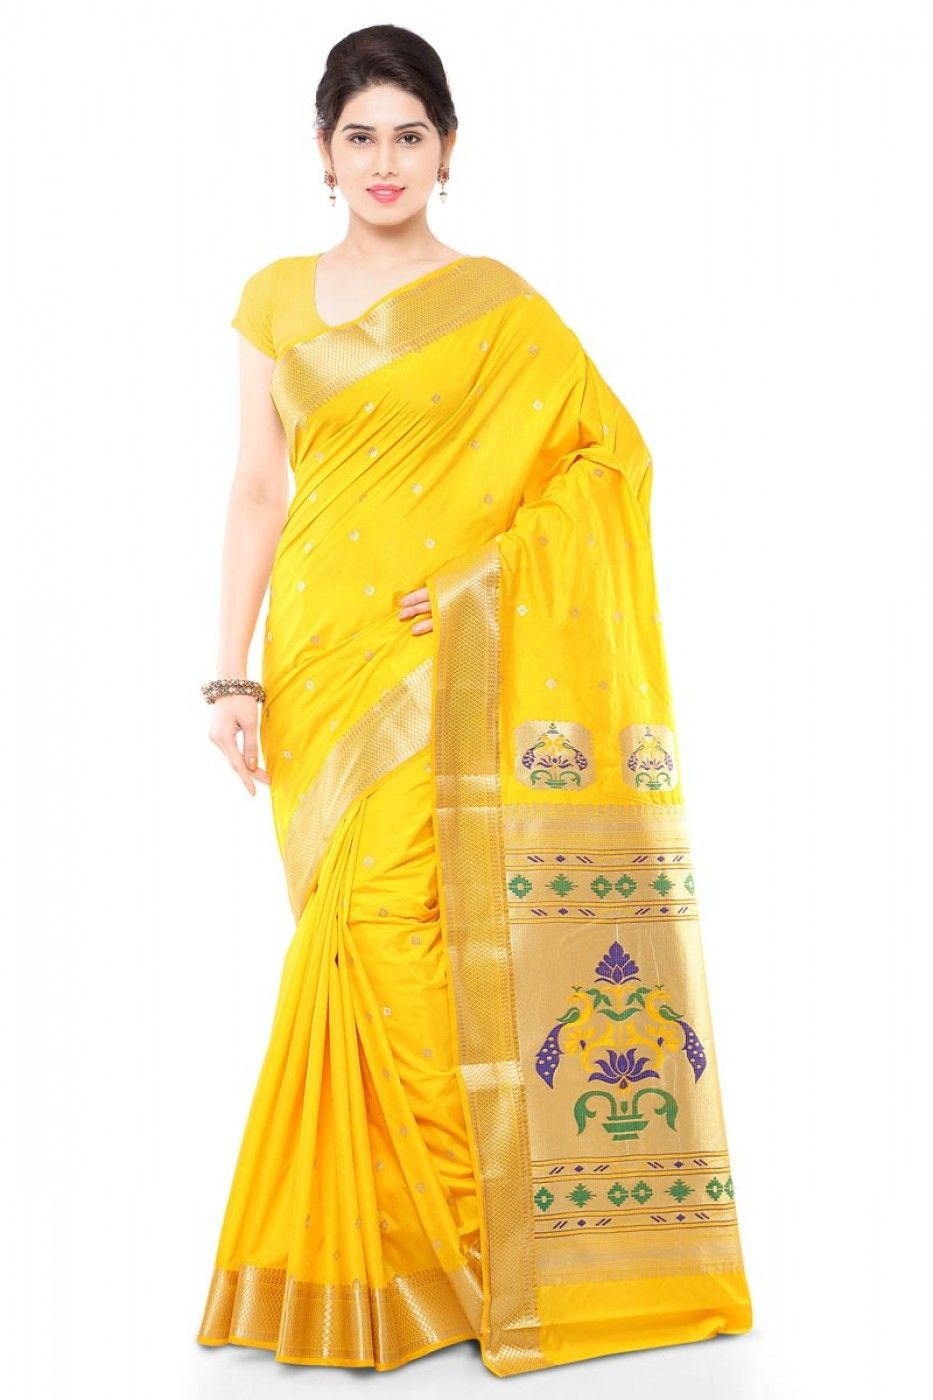 e675449acb Ceremonious #Yellow Color Party Wear #Paithani #Saree in Art Silk Fabric